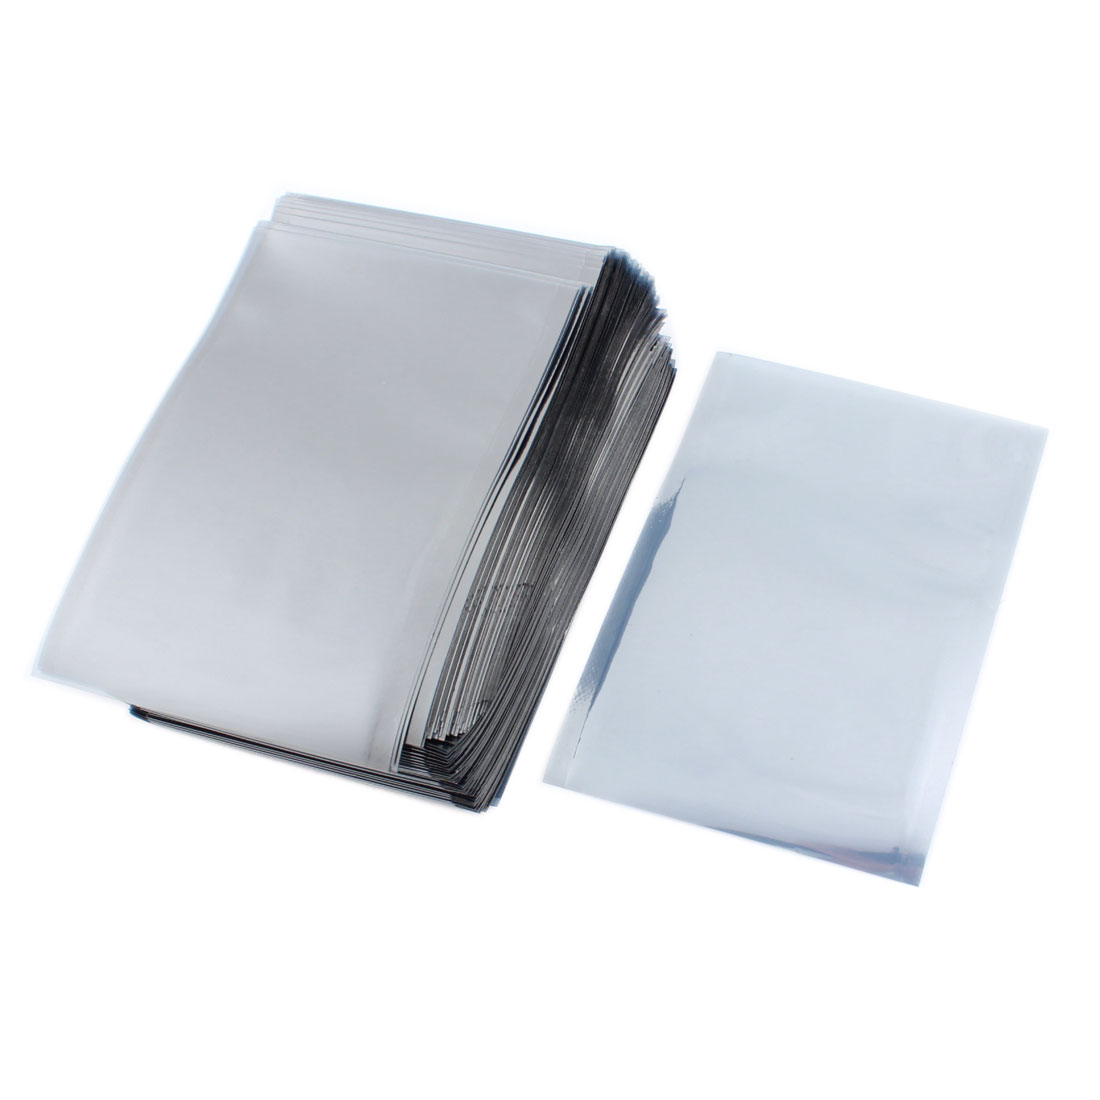 "200pcs 3"" x 5"" 80x120mm ESD Antistatic Shielding Bags Open Top"